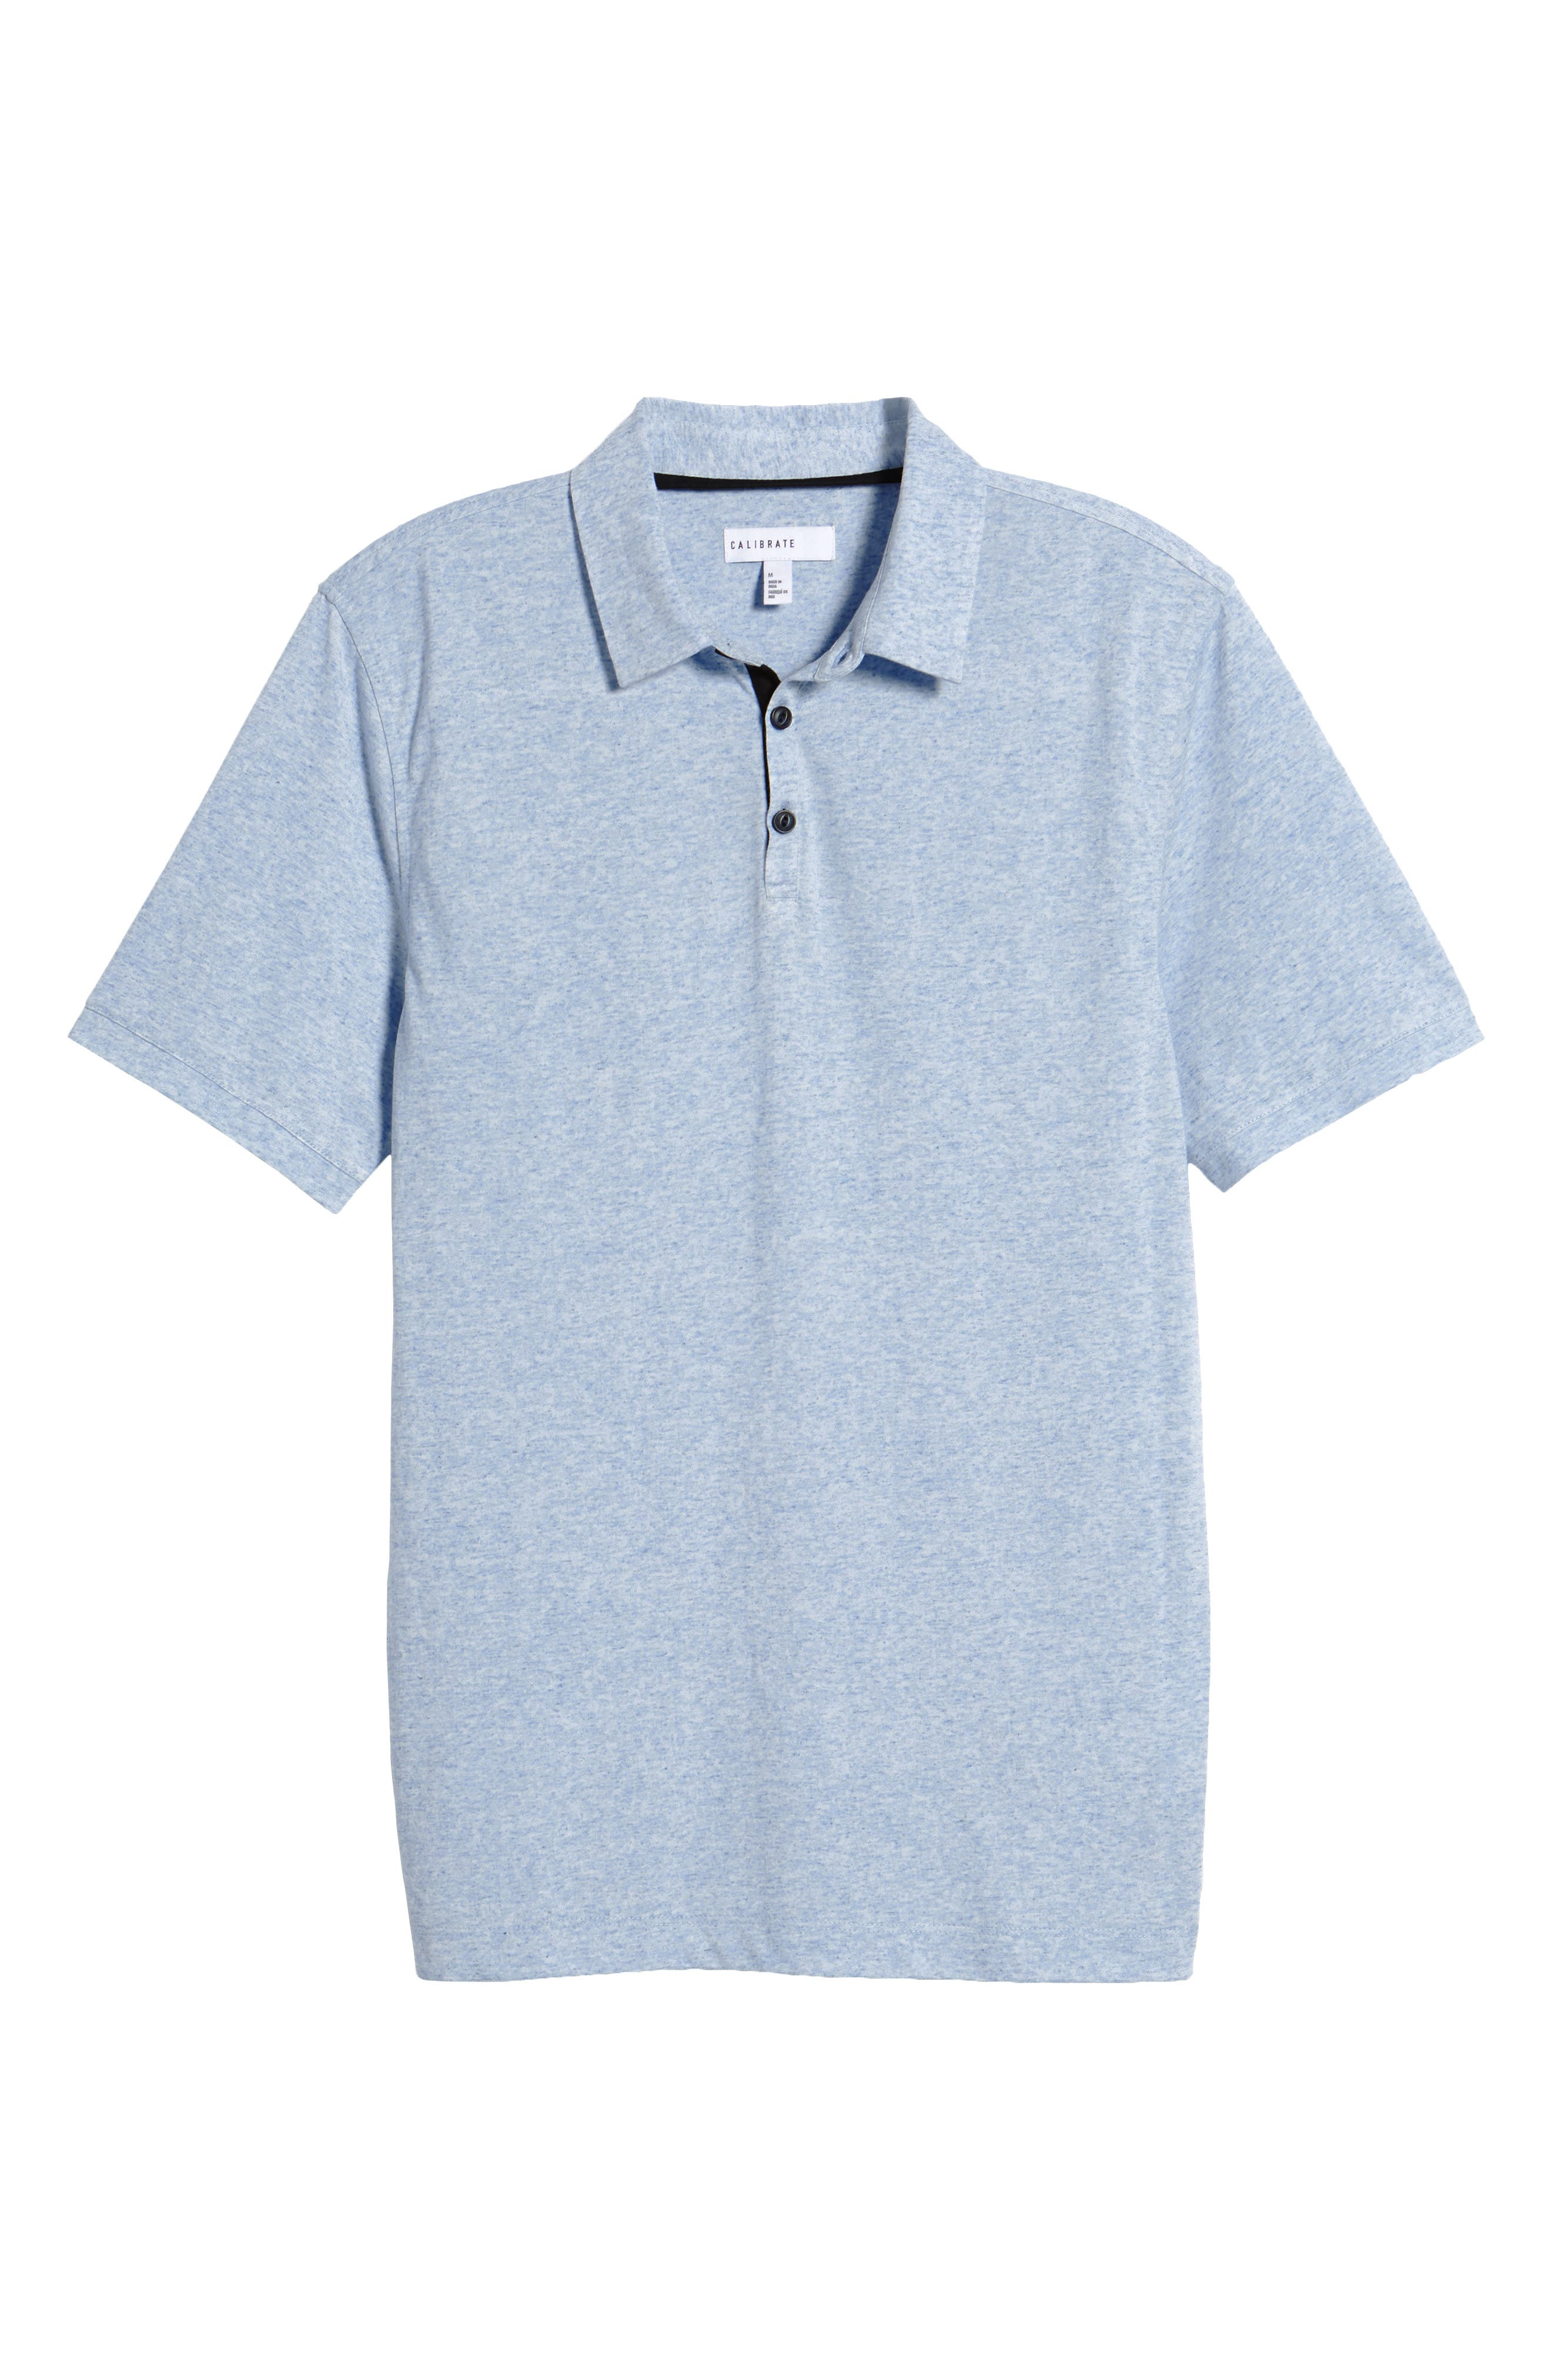 Heathered Polo,                             Alternate thumbnail 6, color,                             Blue Lake Heather